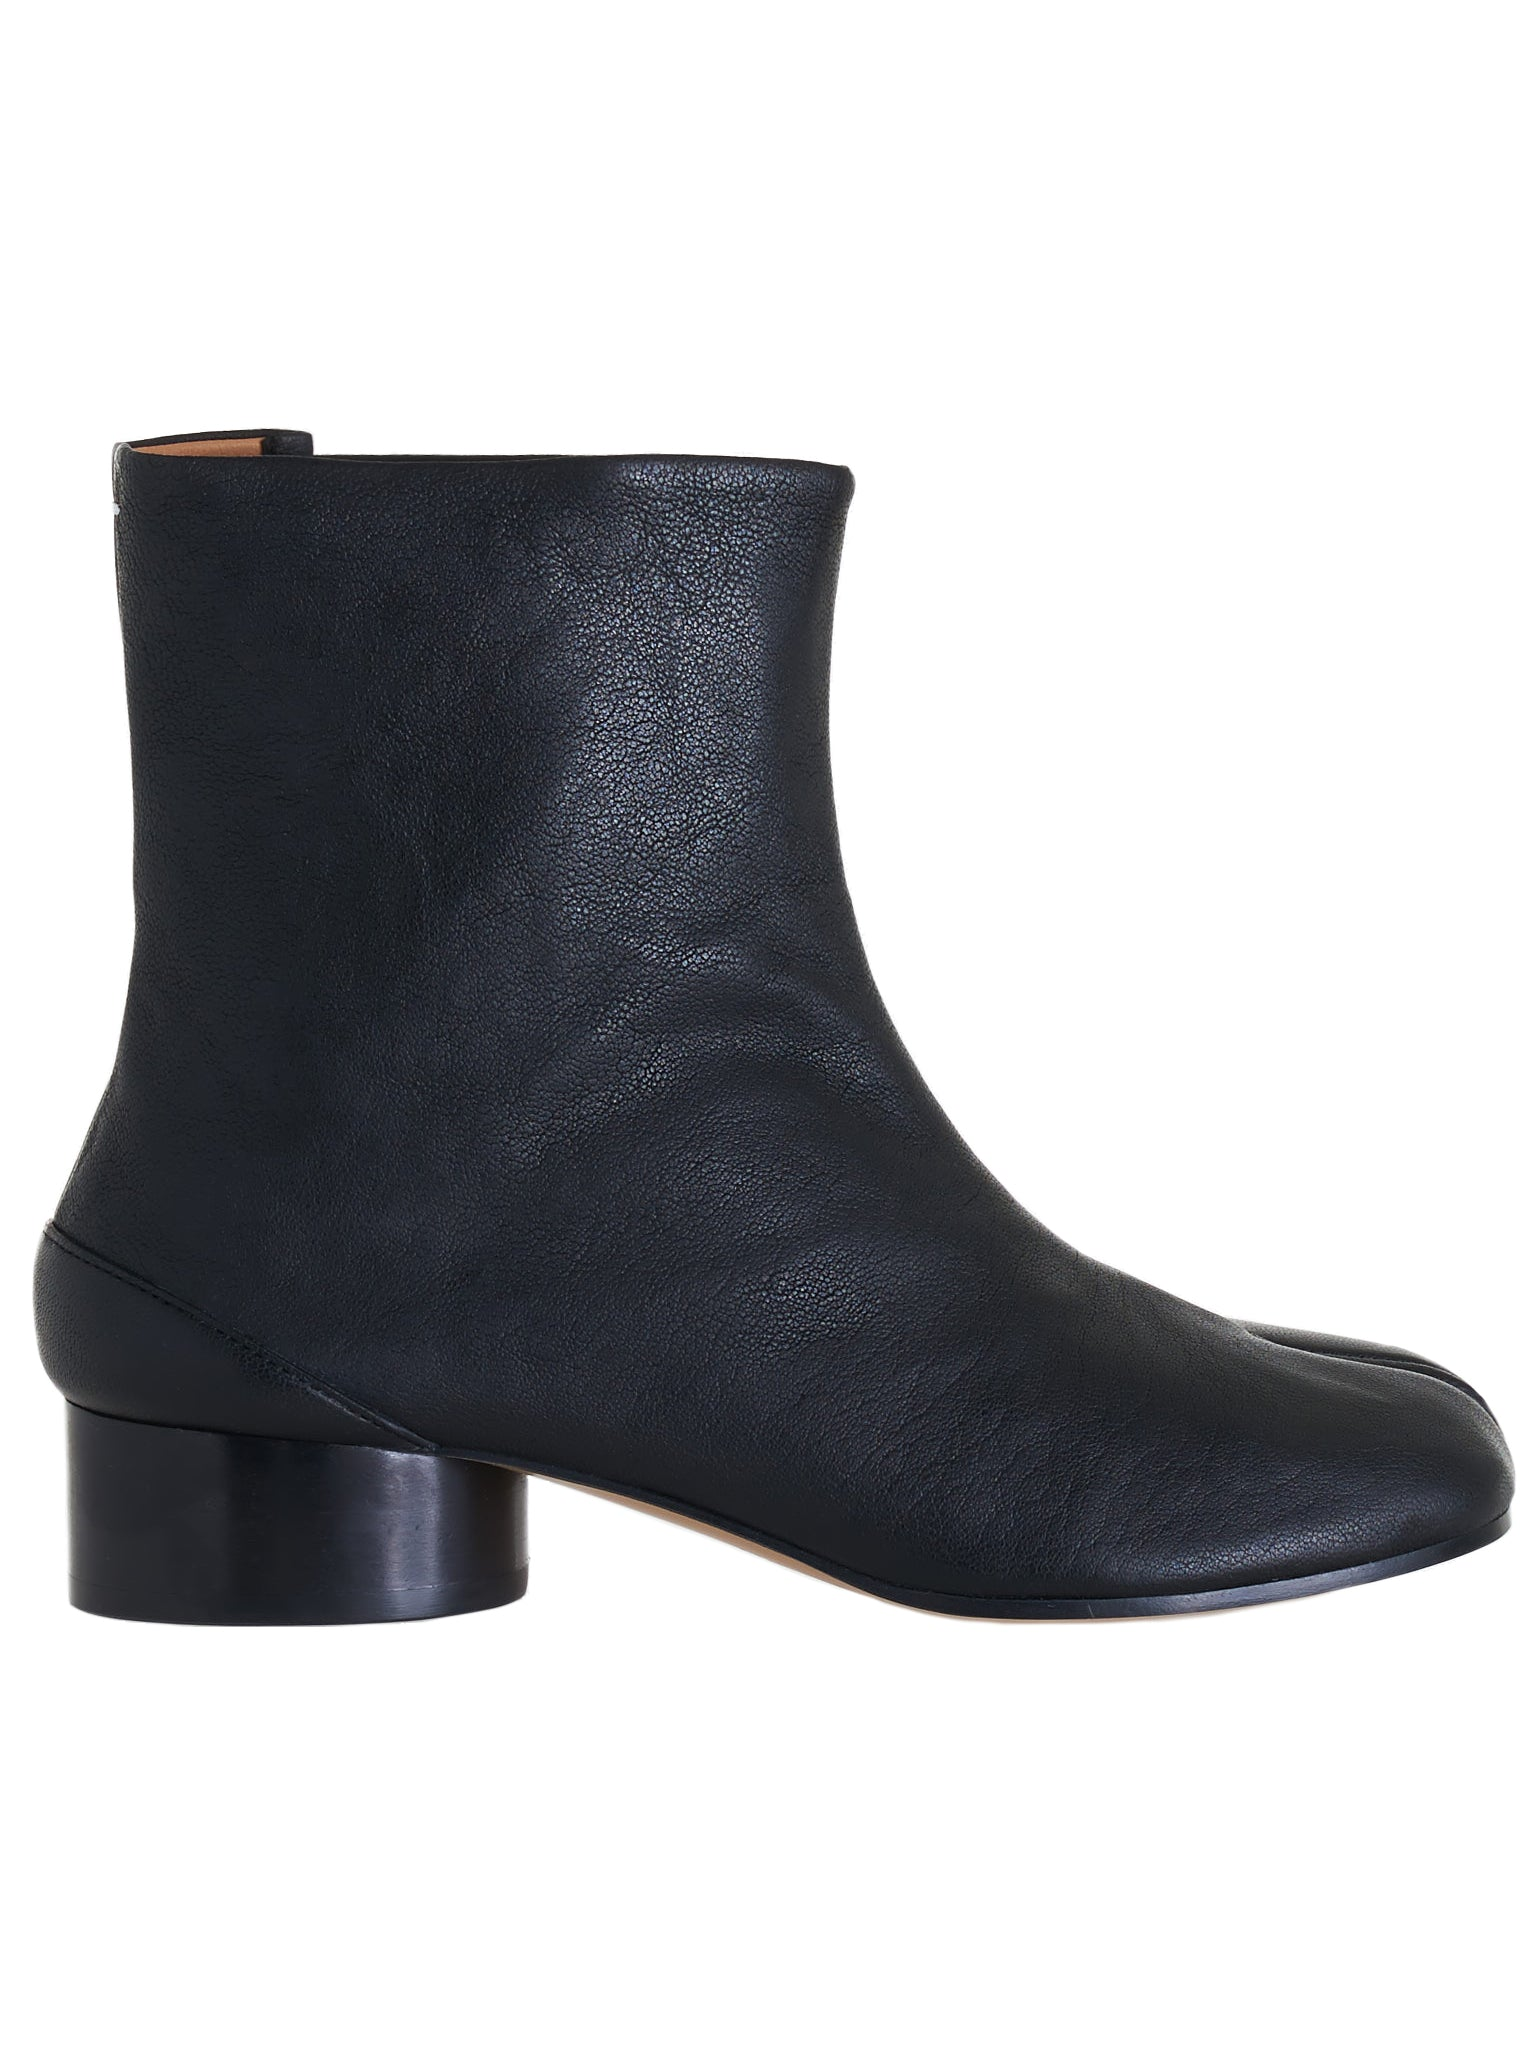 Maison Margiela Tabi Boot | H.Lorenzo - side